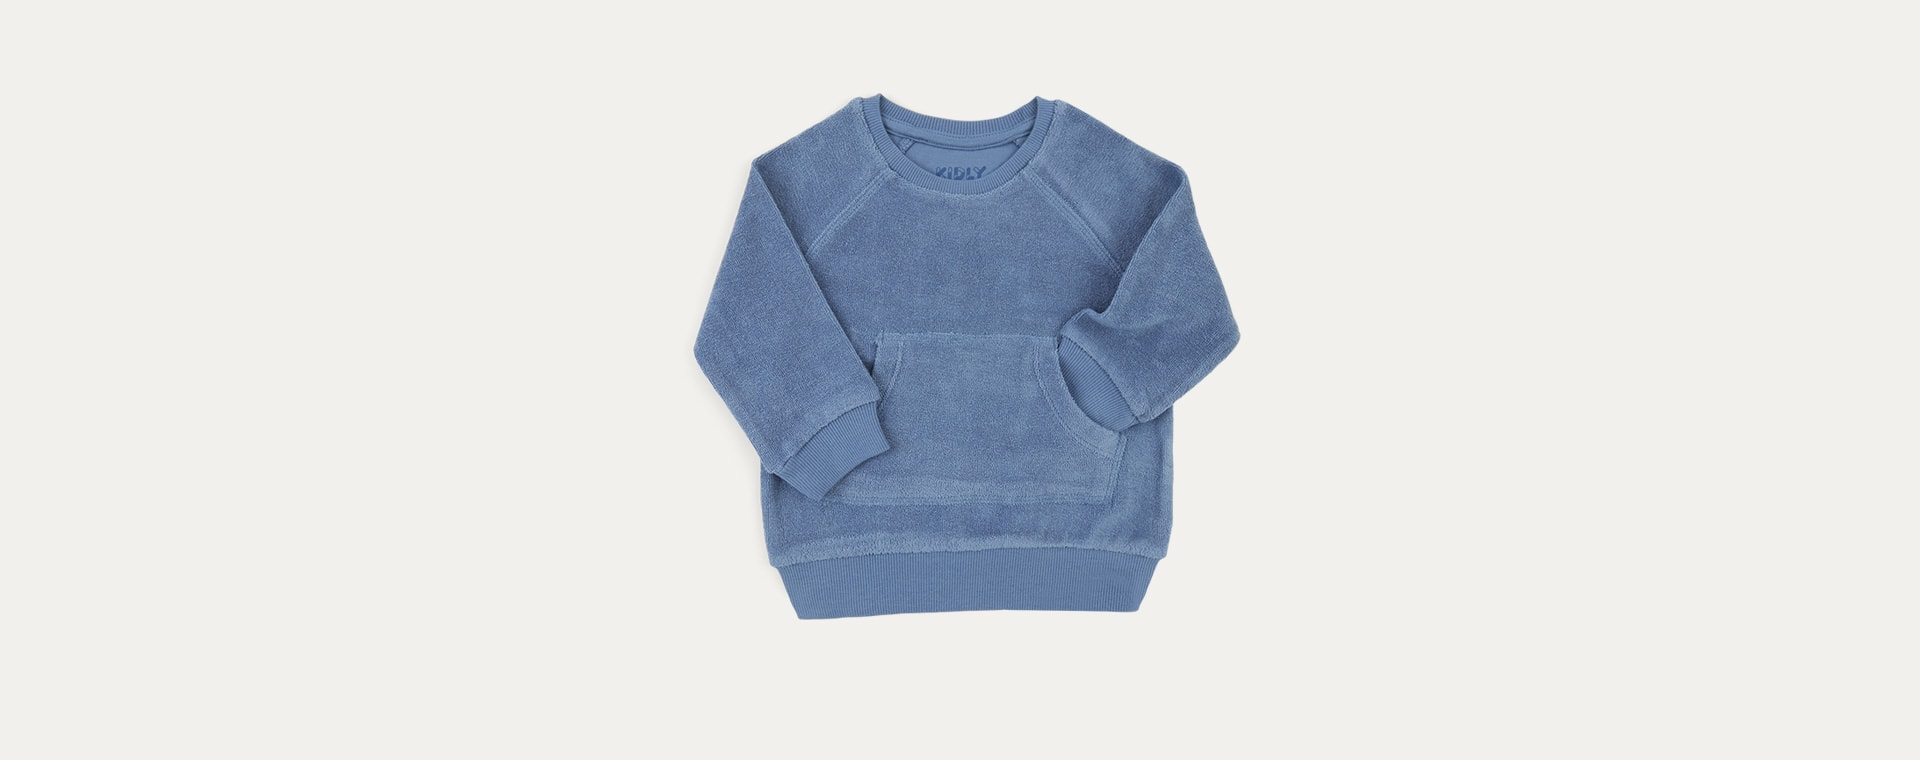 Sky KIDLY Label Towelling Sweatshirt